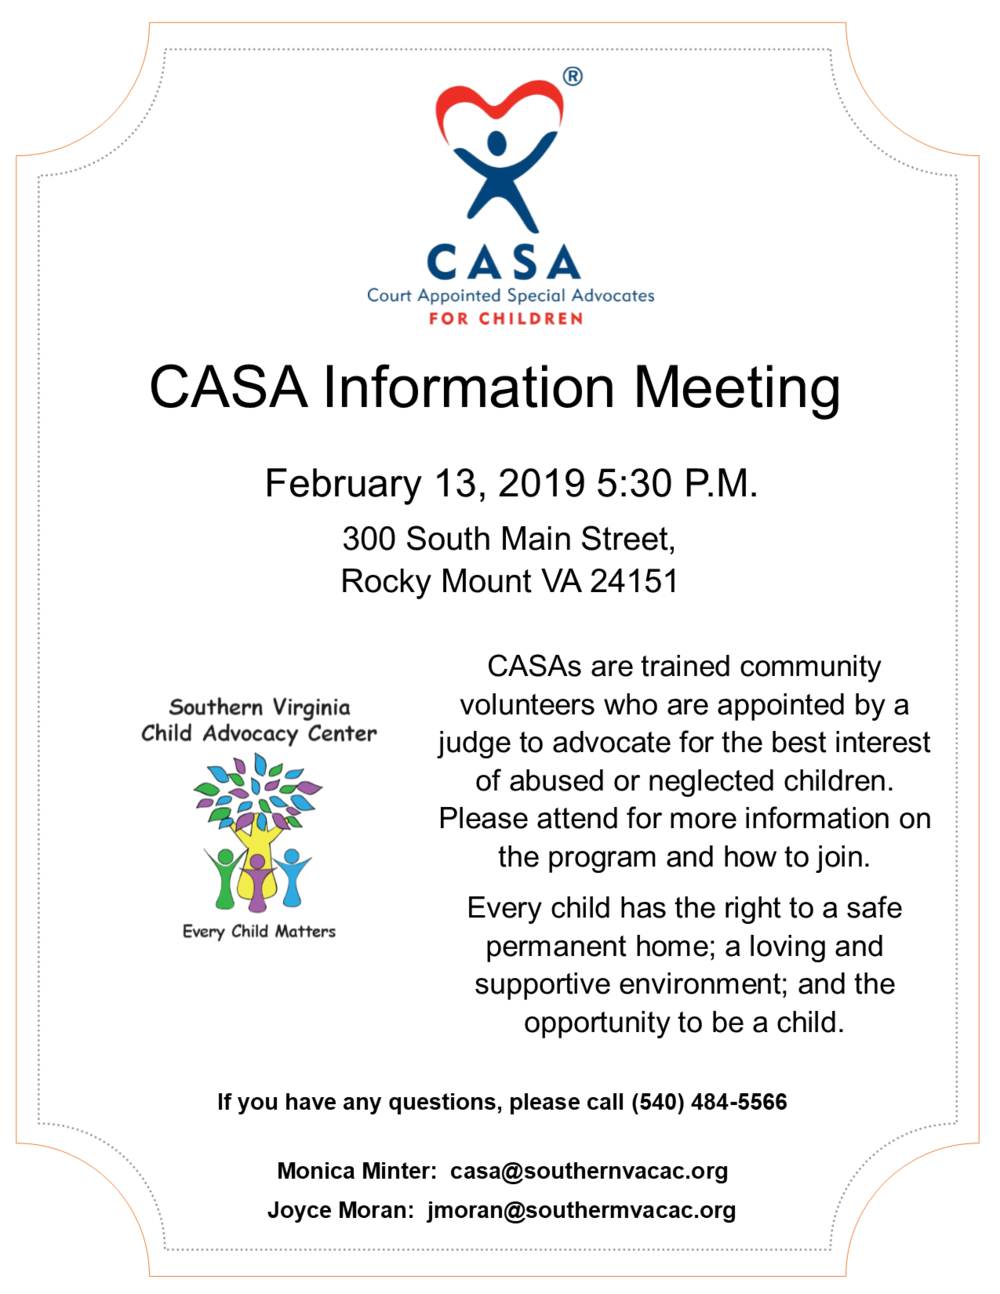 Become A CASA! - If you have some time to give back to our community and would like to help local kids, learn about our CASA program! We need more volunteers to help children on our waiting list. Attend our information session to find out what it means to be a Court Appointed Special Advocate.